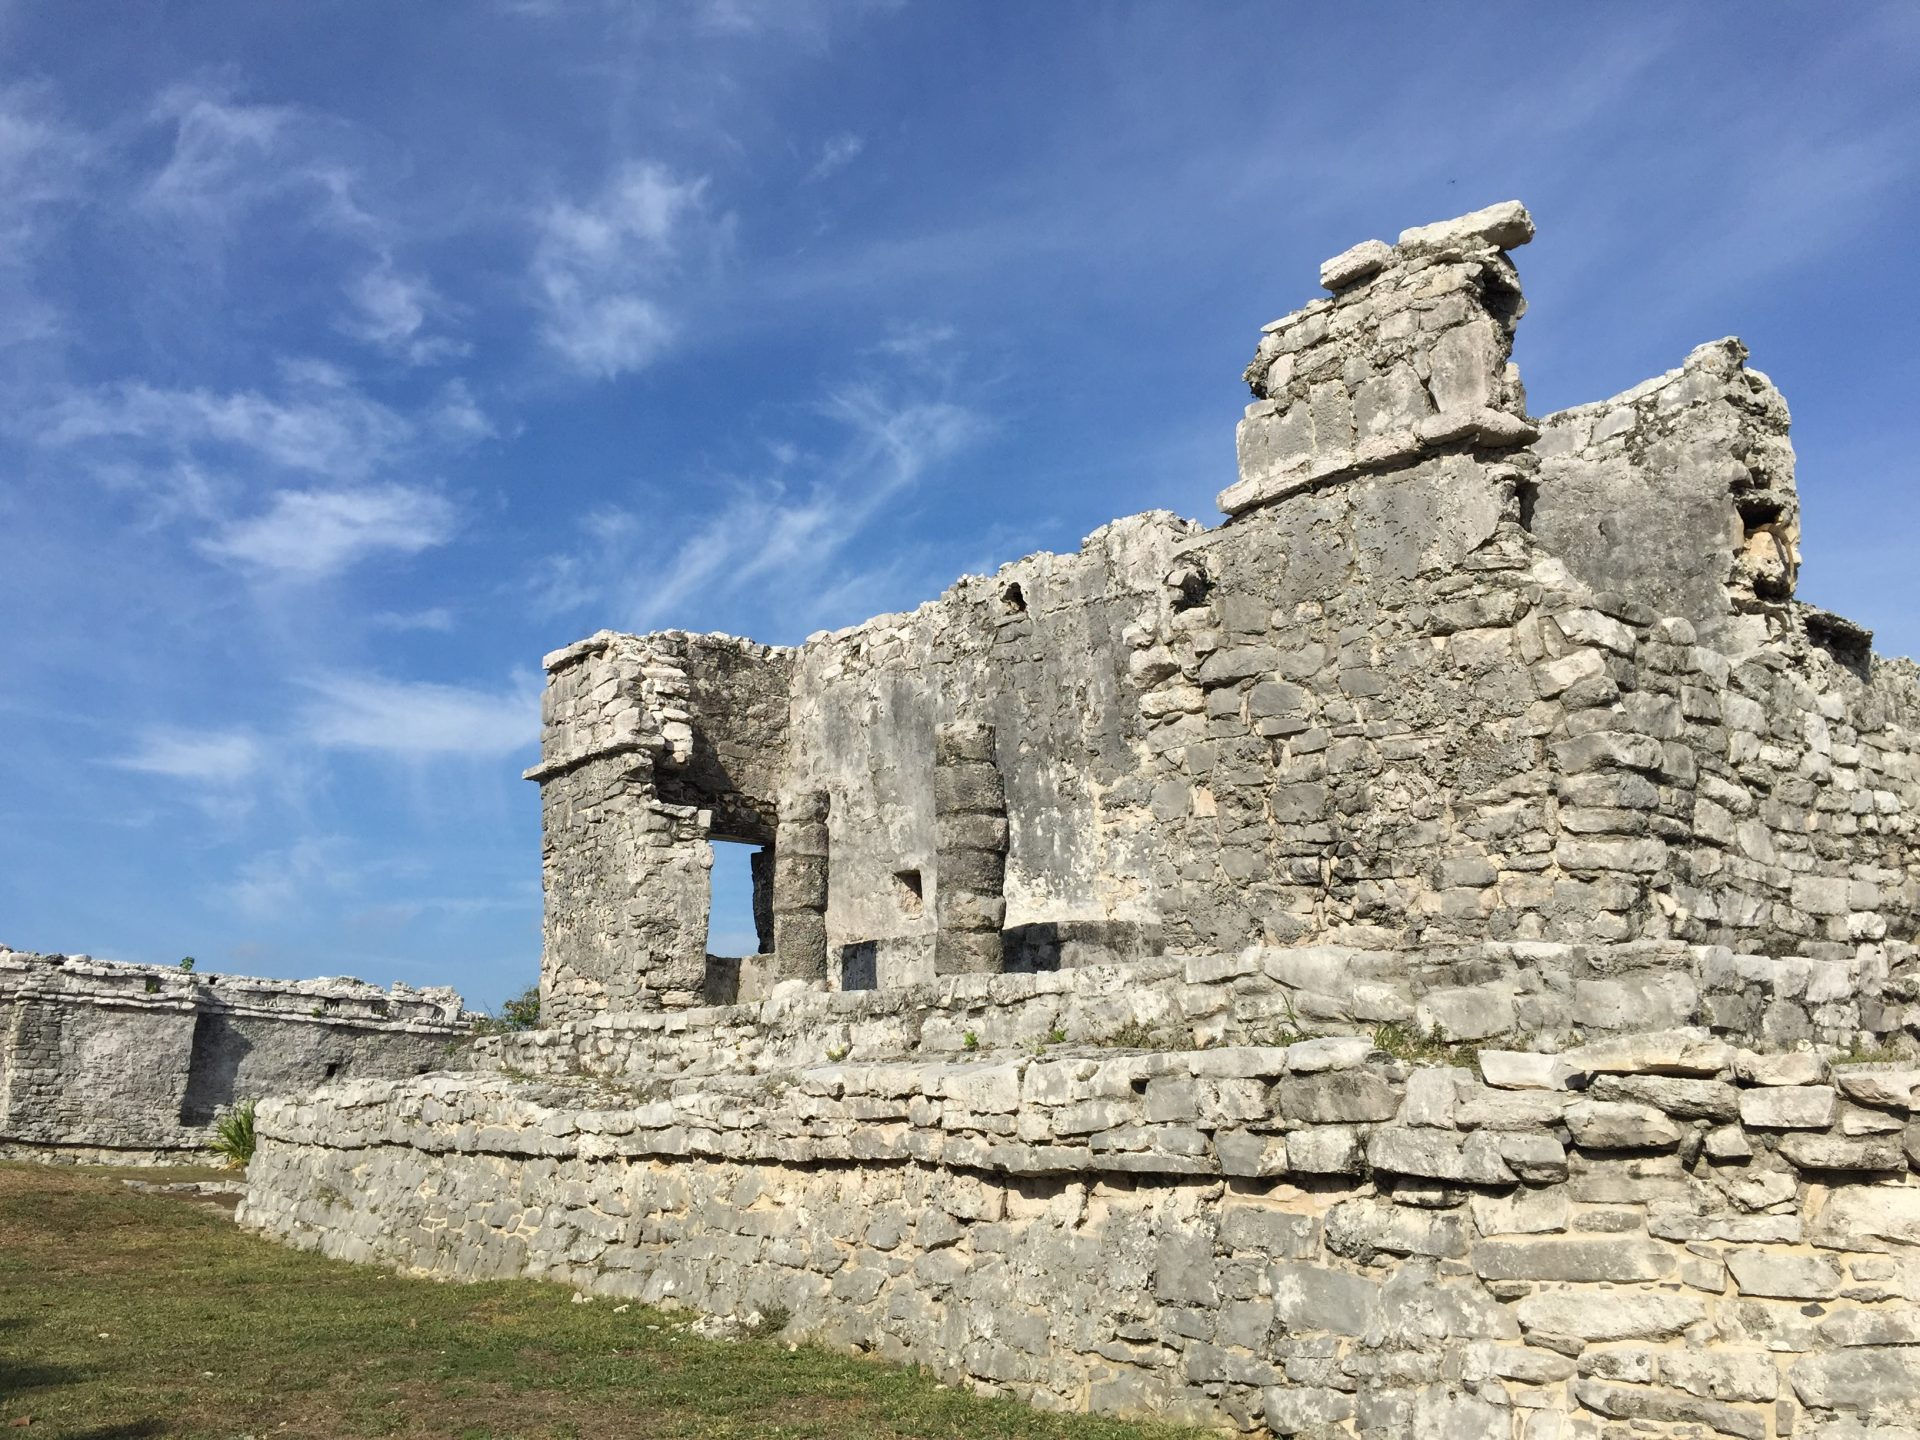 ruins tulum mexico - Travel Contests: February 12th, 2020 - Mexico, South Africa, Germany, & more